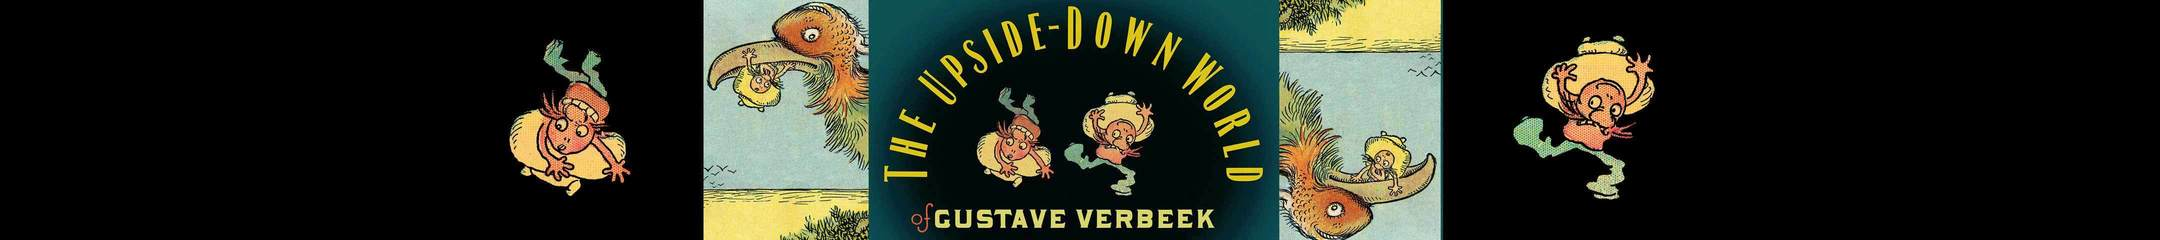 The Upside Down World of Gustave Verbeek